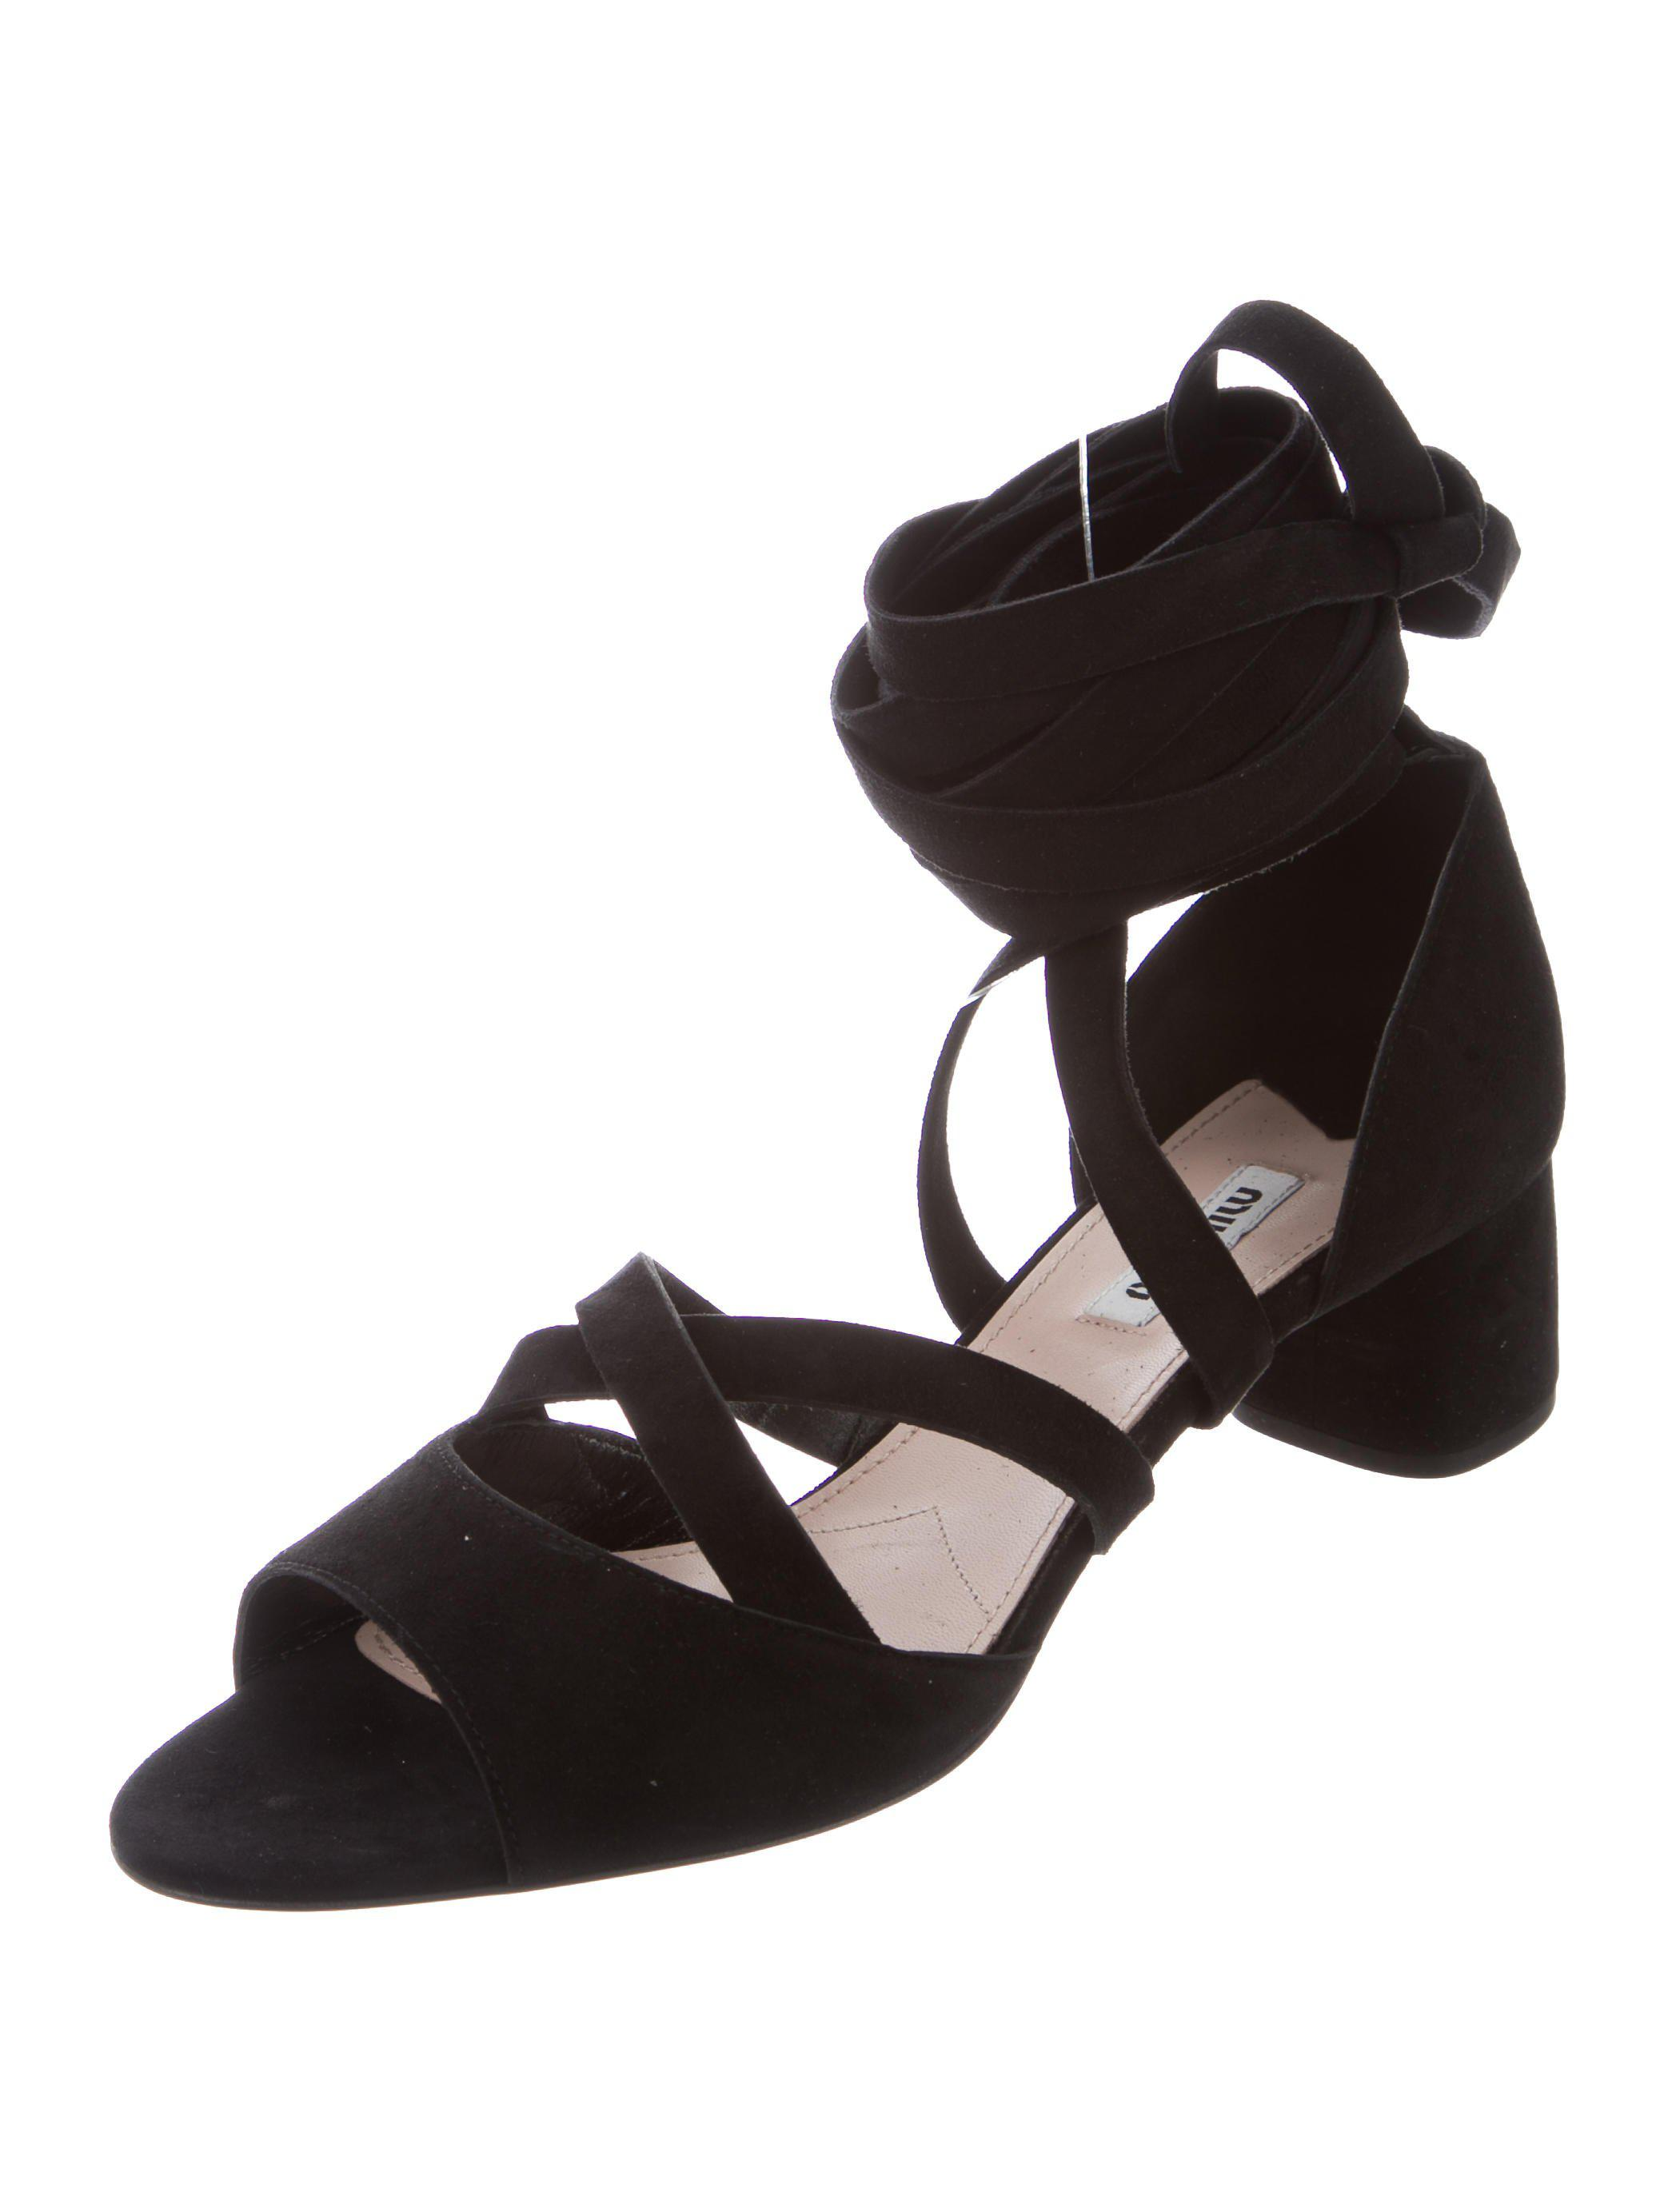 Miu Miu Leather Lace-Up Sandals w/ Tags supply cheap price discount with credit card clearance really really cheap cheap sale online jeAvf